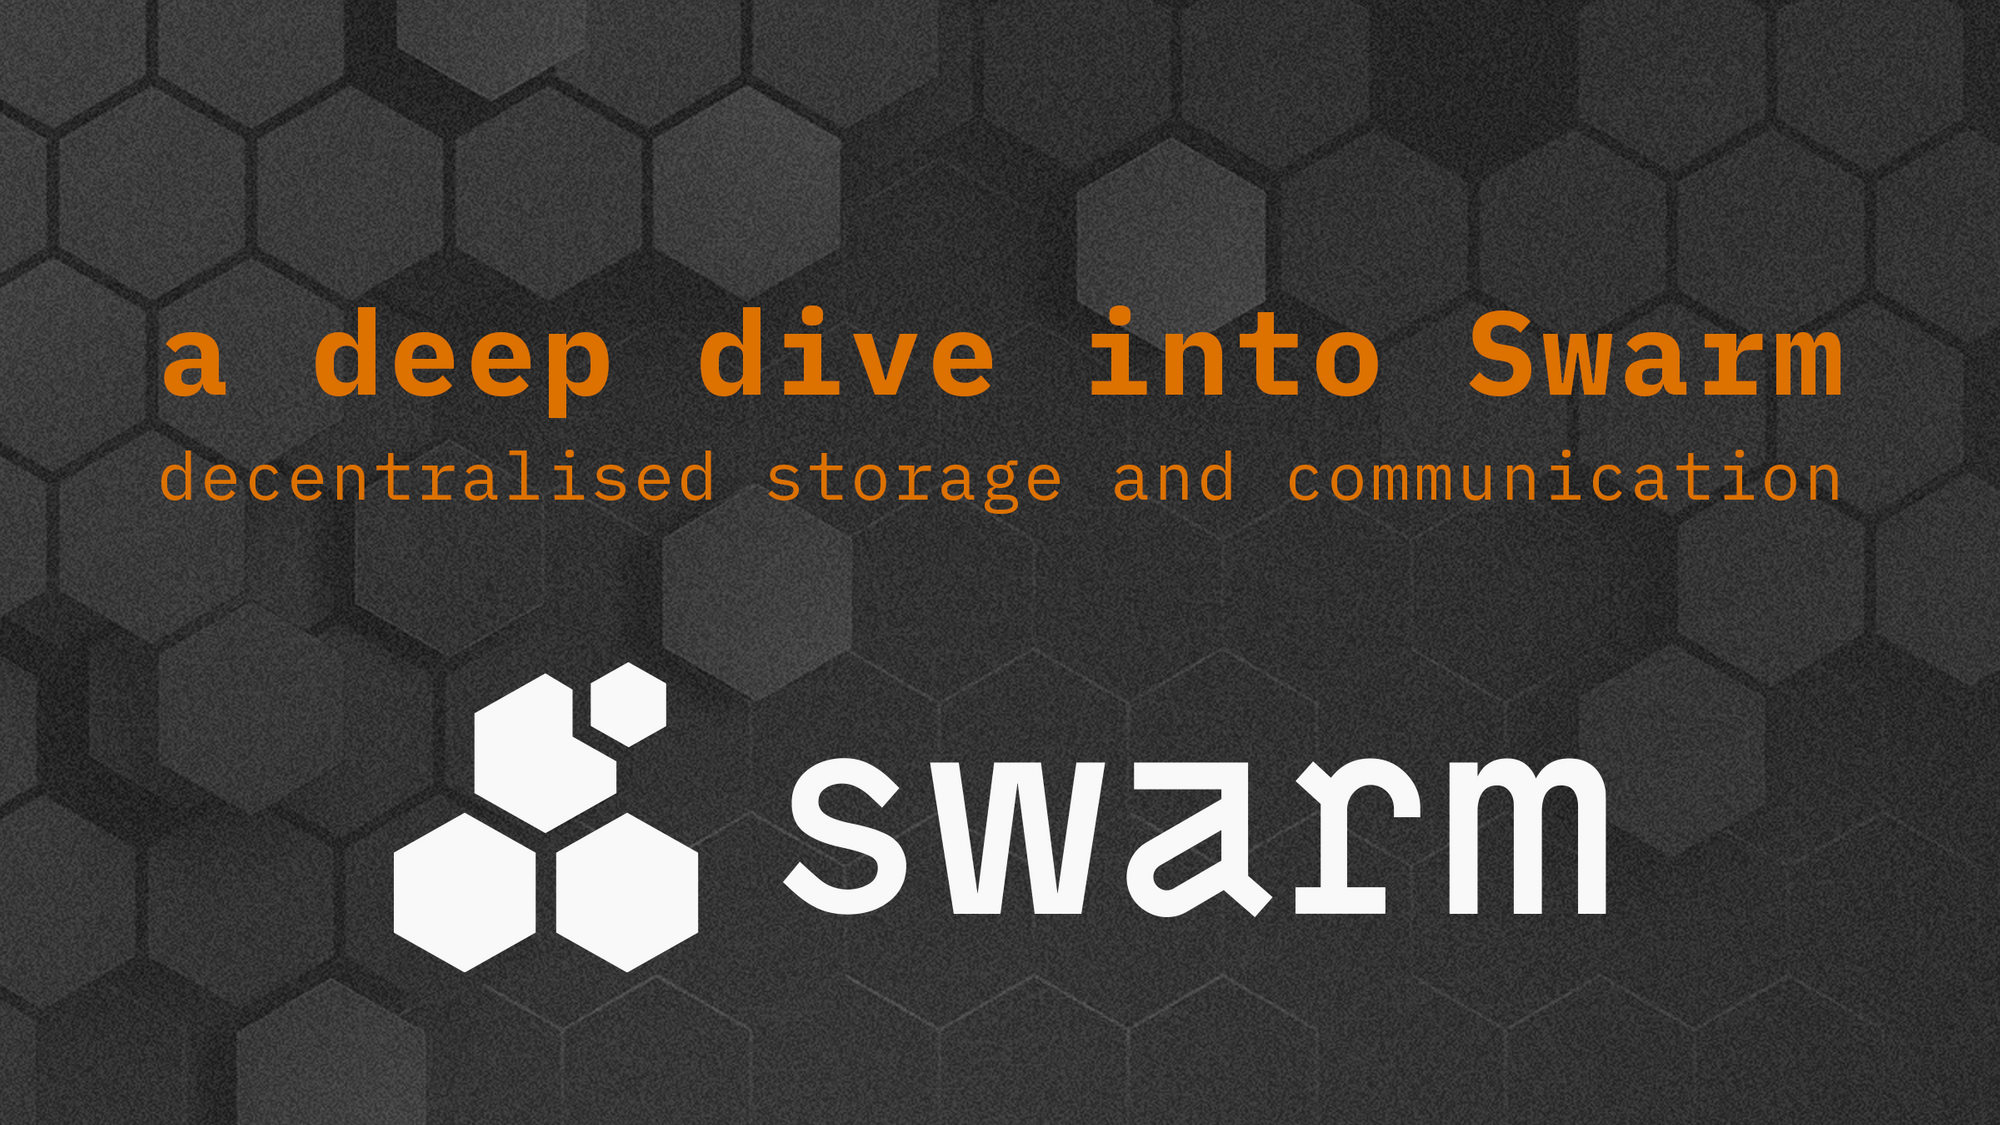 [Coinlist] A Deep Dive into Swarm: Decentralized Storage and Communication System - AZCoin News